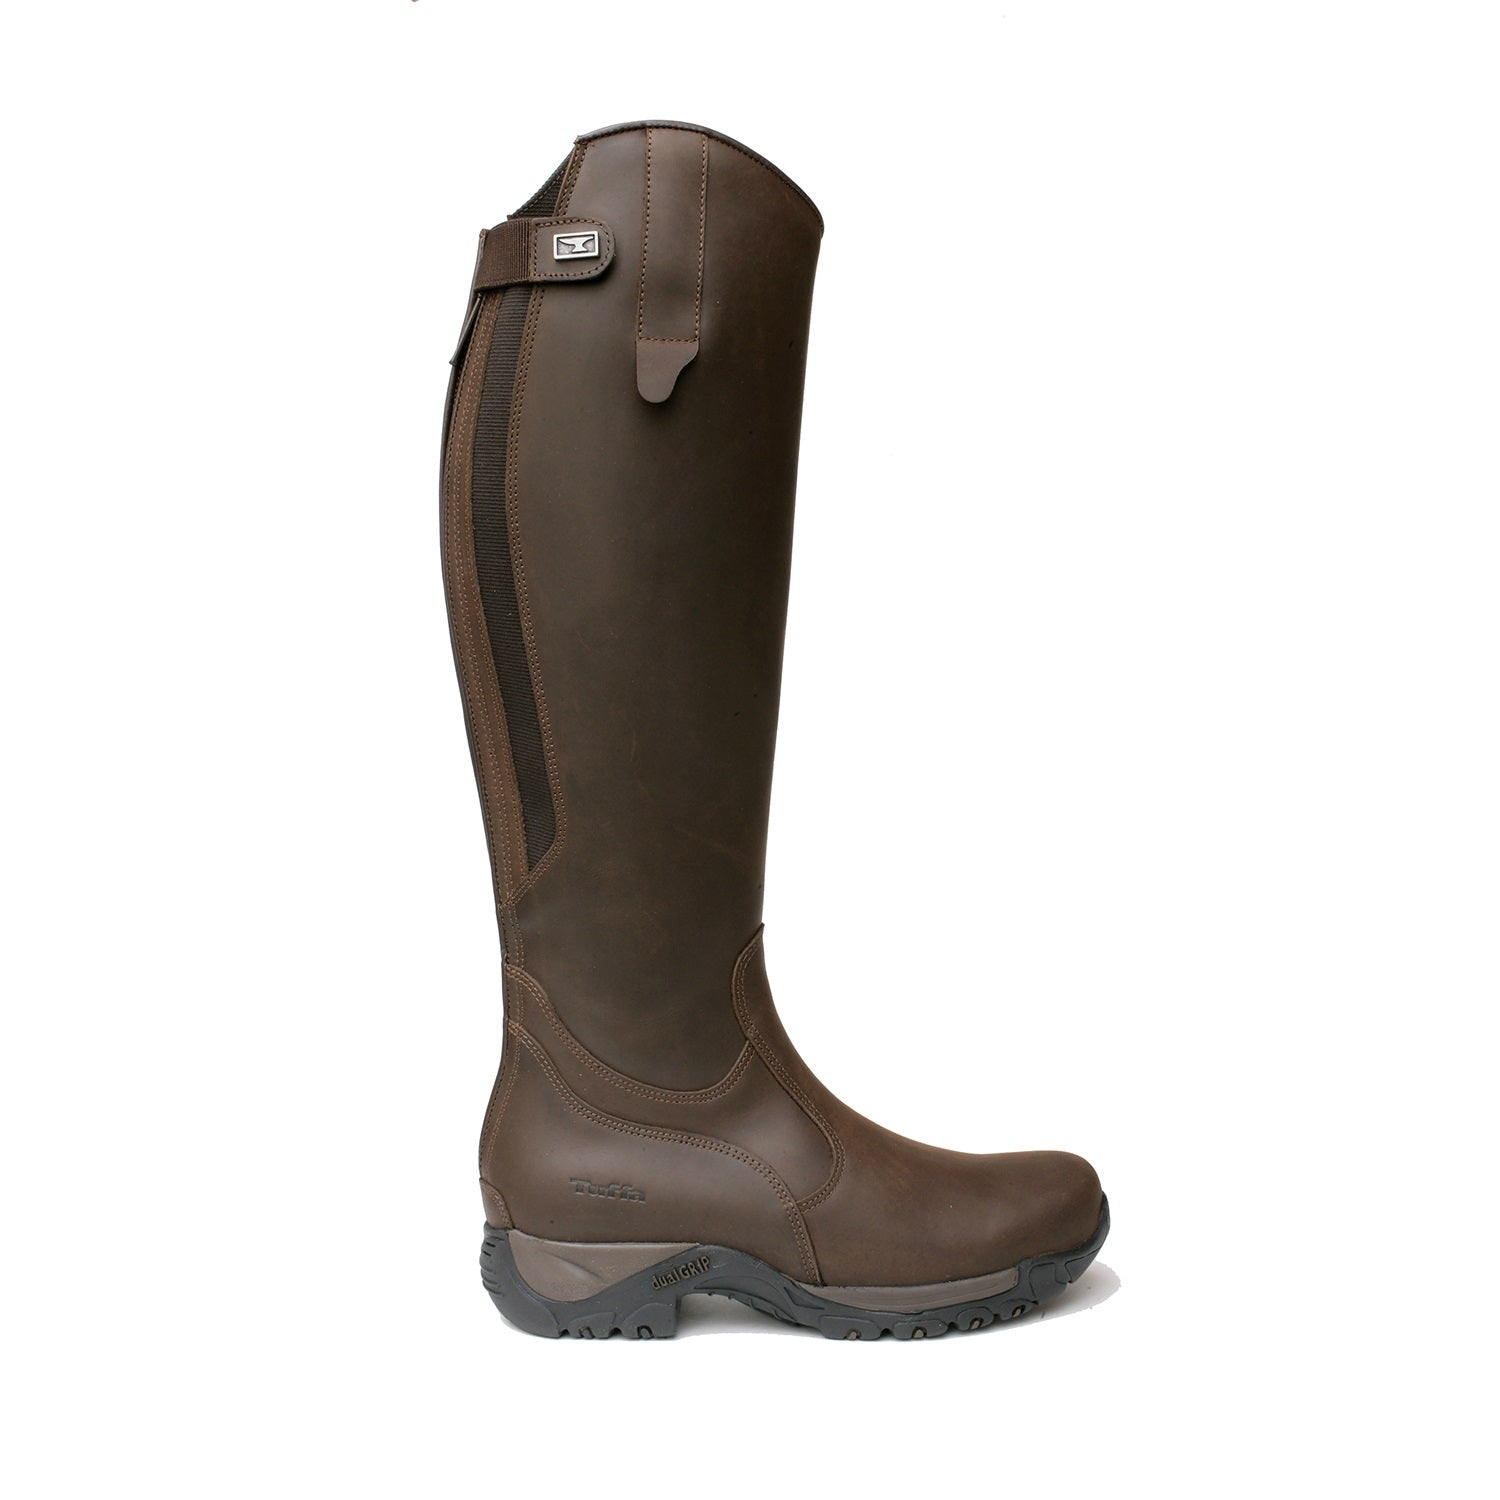 Tuffa Boots/Aylsham All Rounder Riding Boot Black/Brown